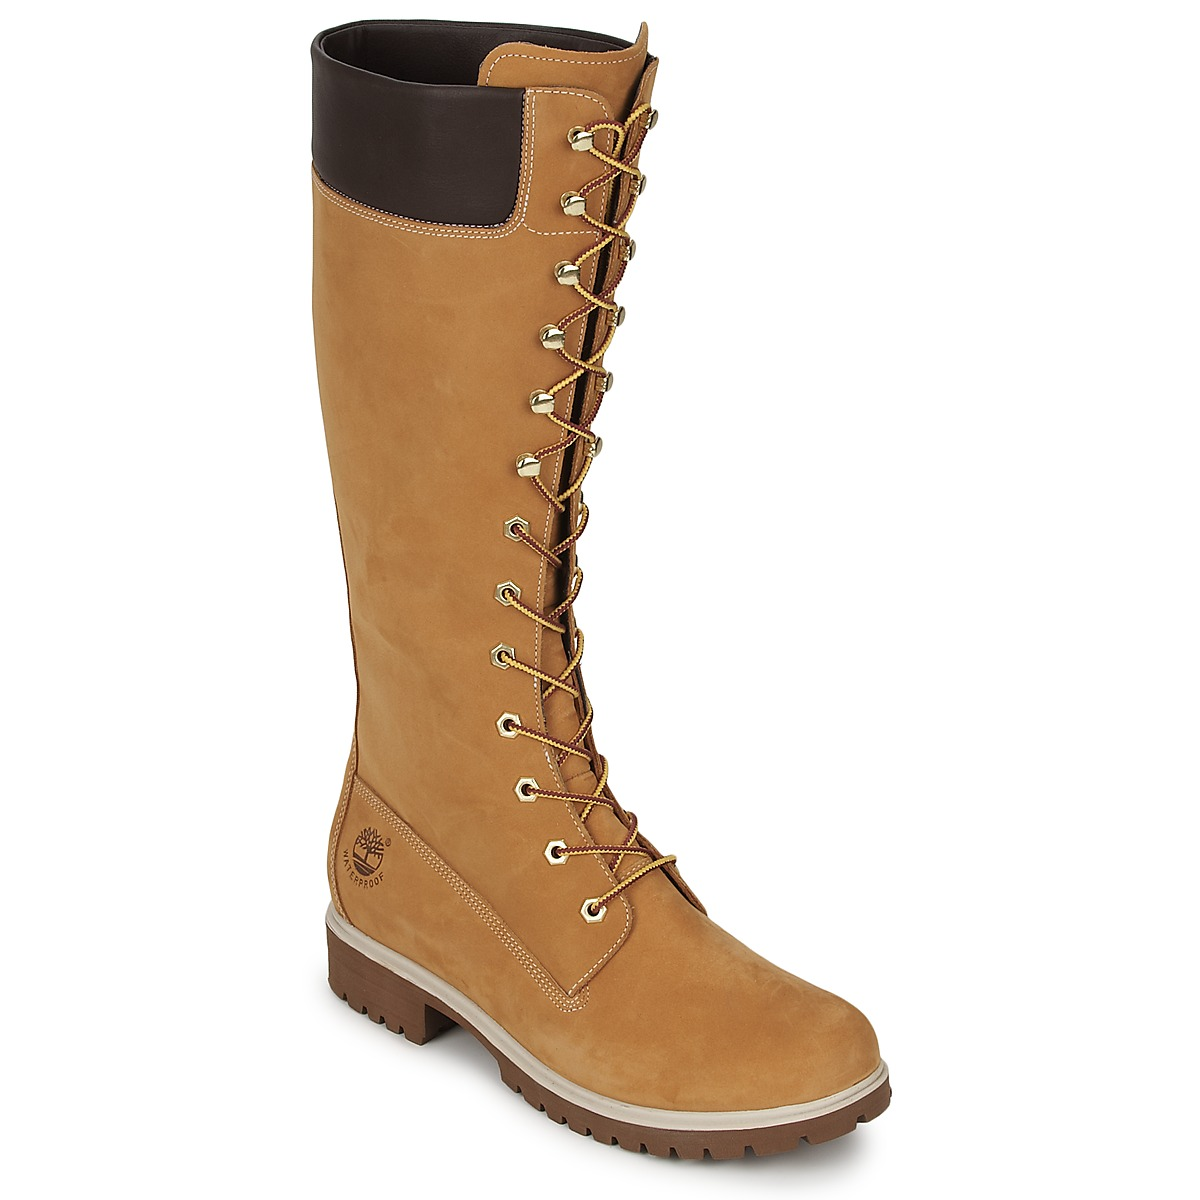 WOMEN'S PREMIUM 14IN WP BOOT